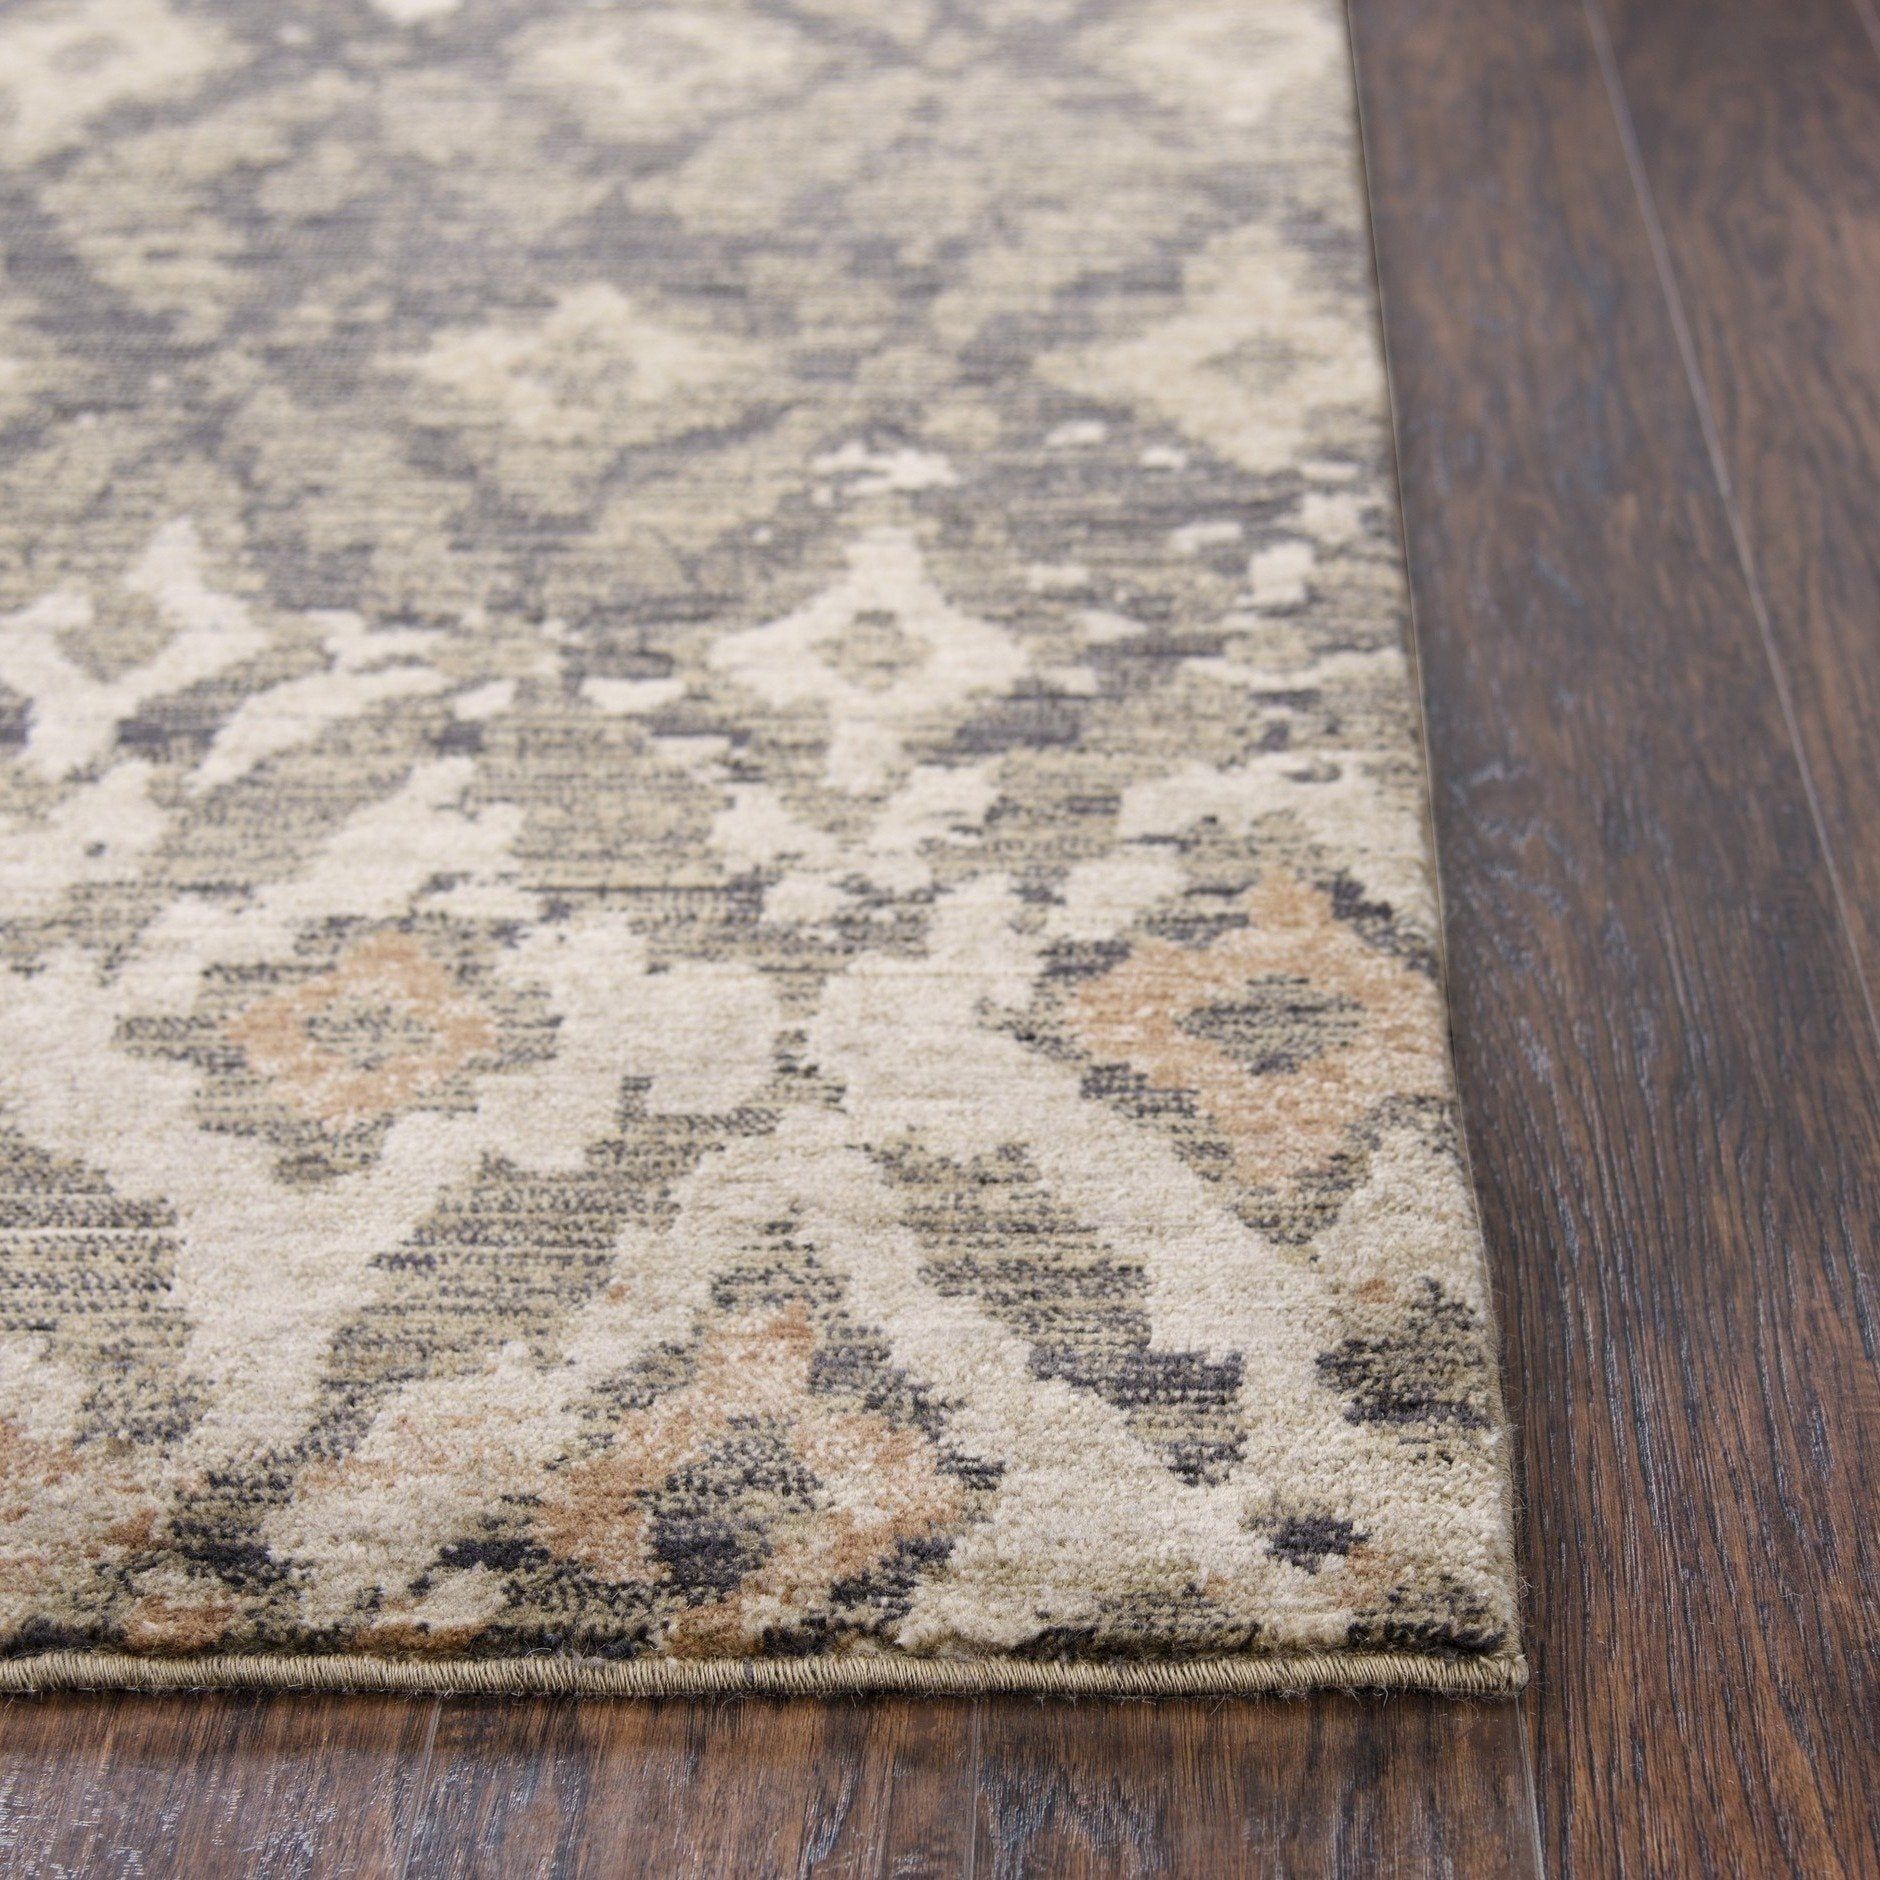 bohemian ikat diamond kitchen runner rug in brown, ivory, gray and rust